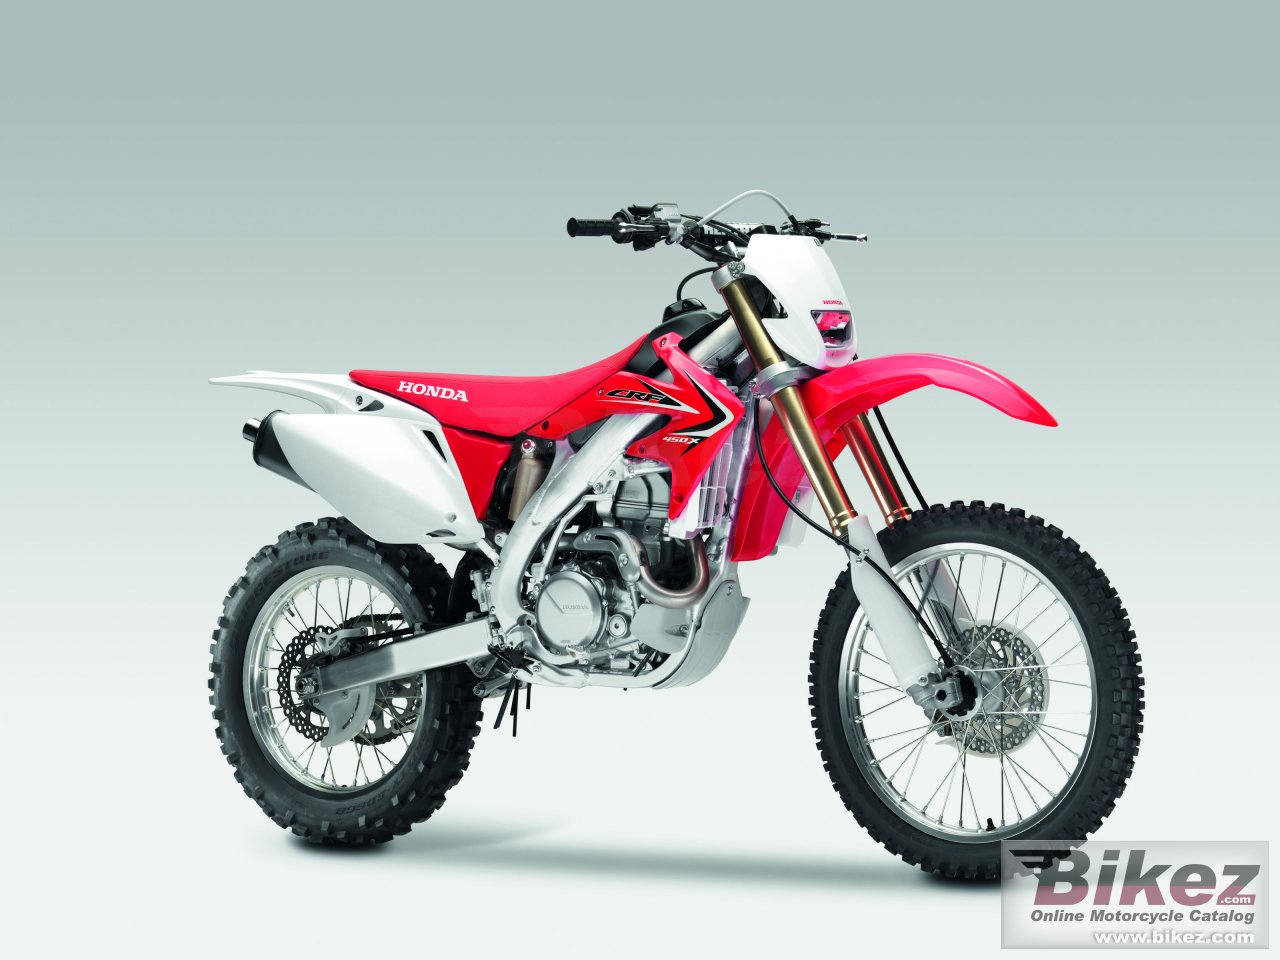 Big Honda crf450x picture and wallpaper from Bikez.com